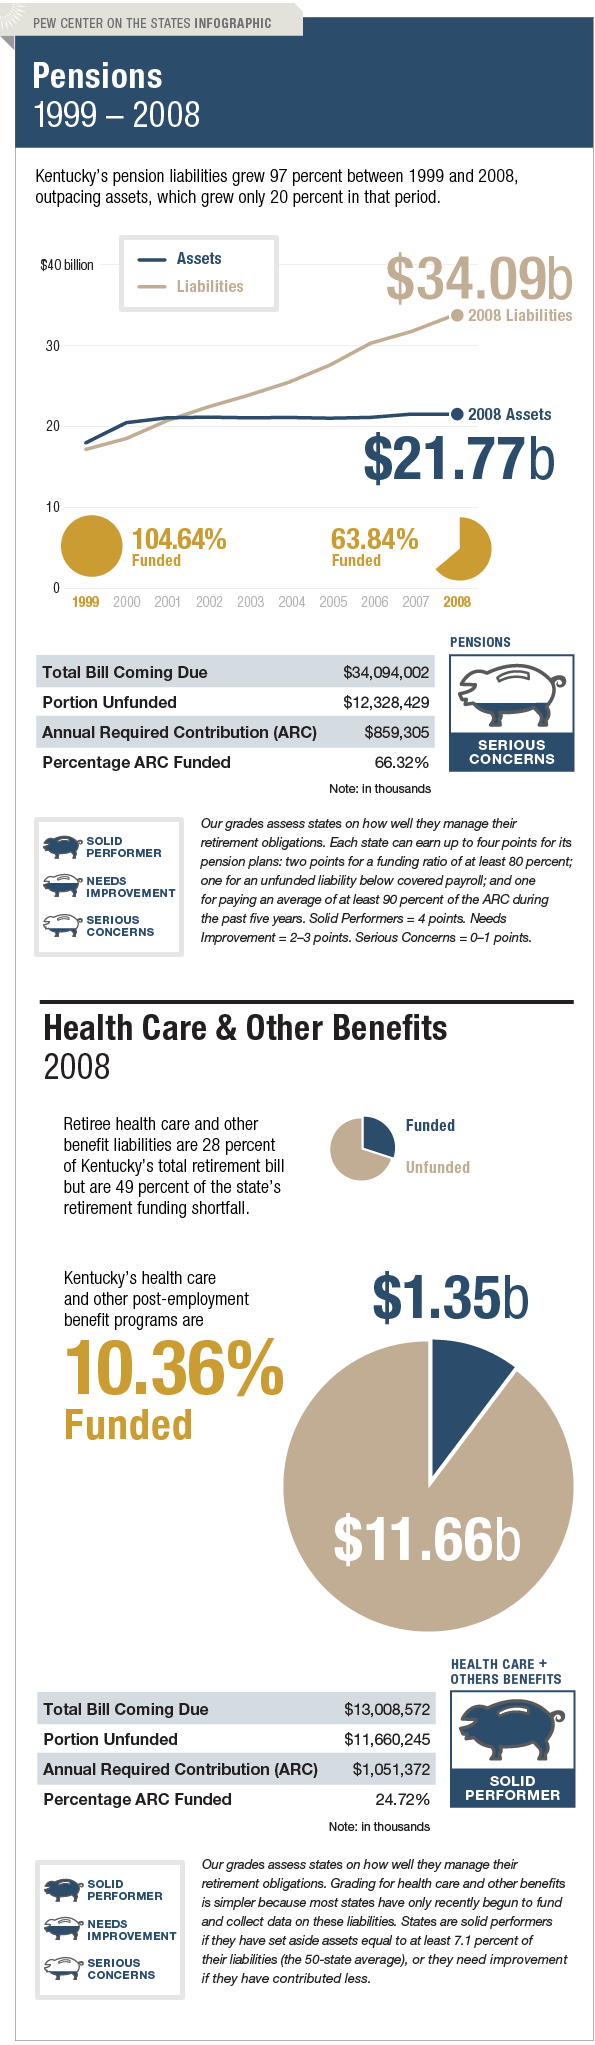 The Trillion Dollar Gap Kentucky Pension Funding